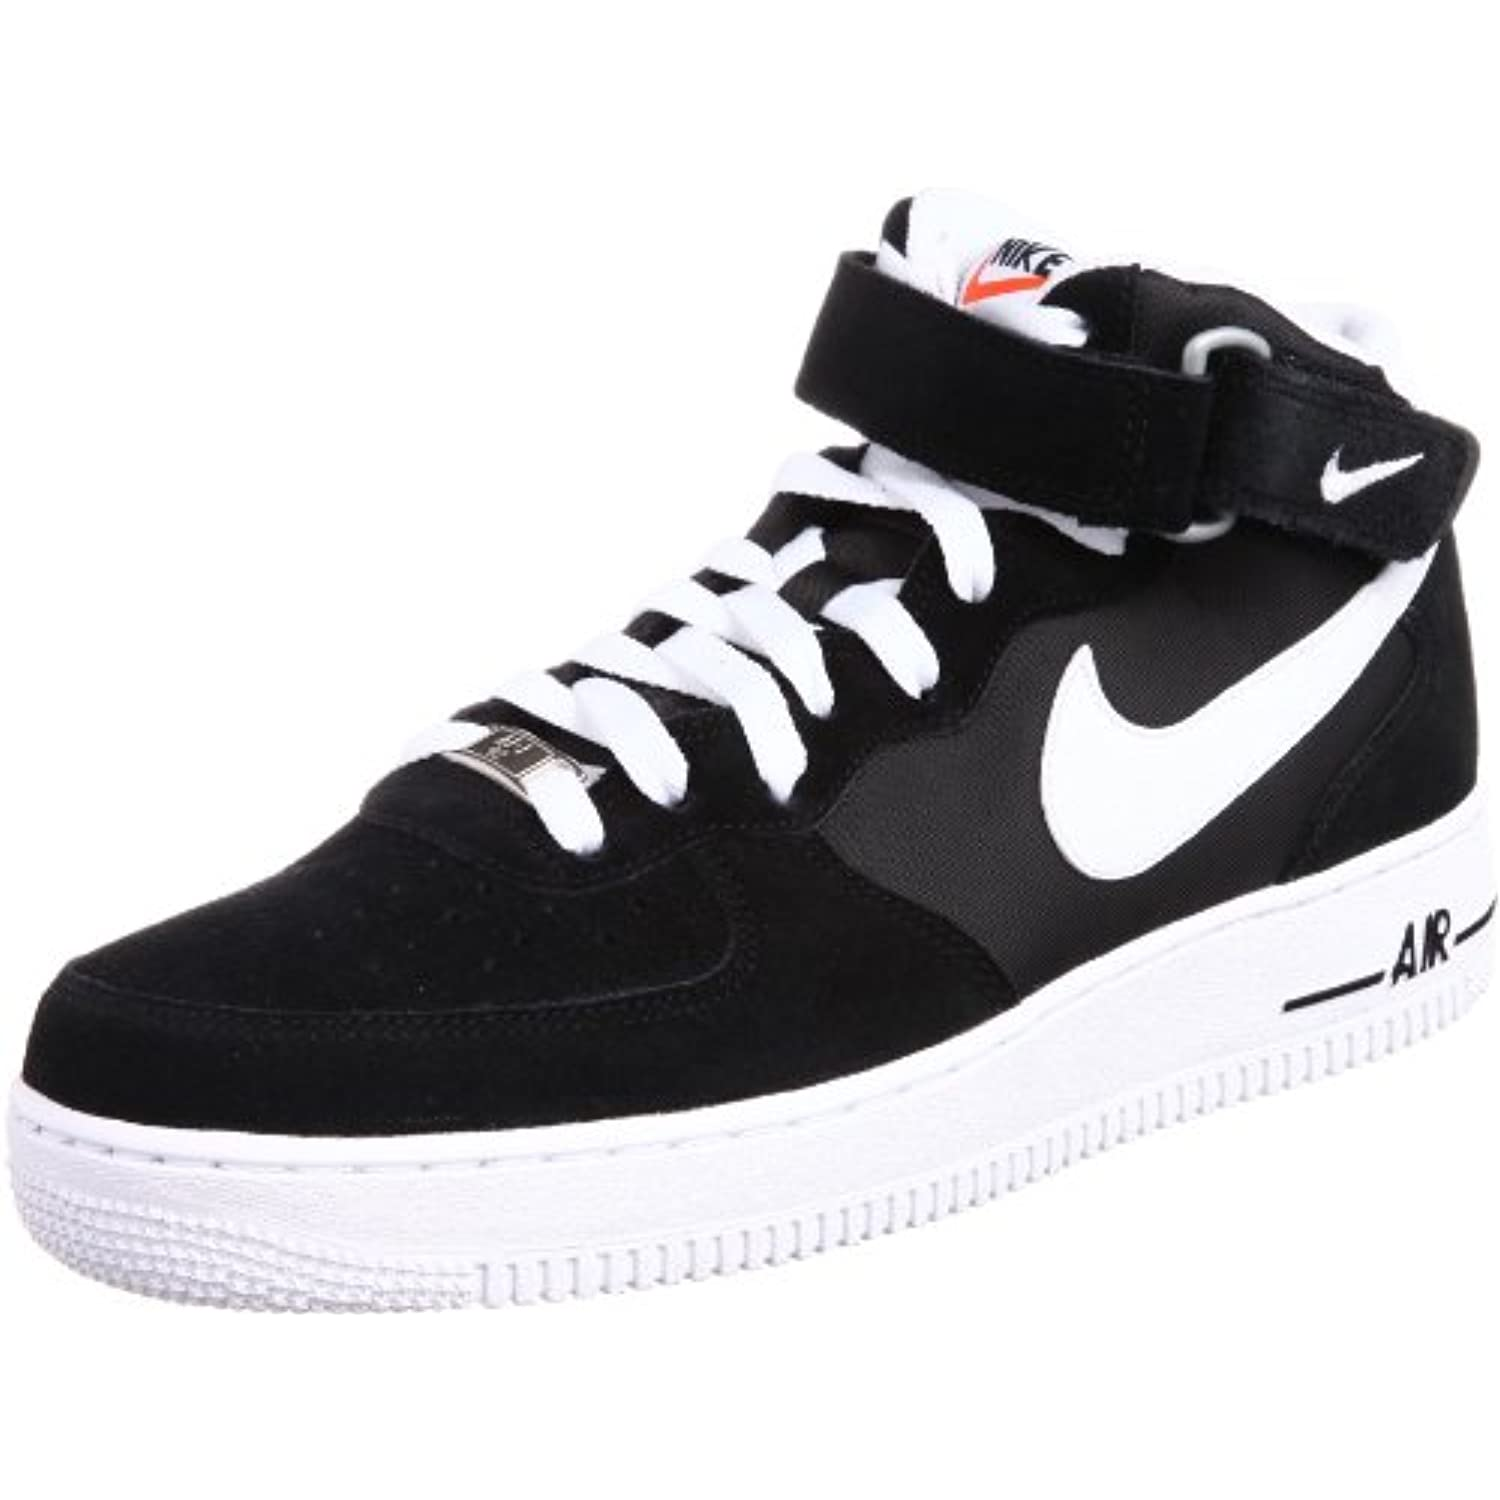 Apparence exquise Mode Lifestyle femme NIKE Nike Md Runner